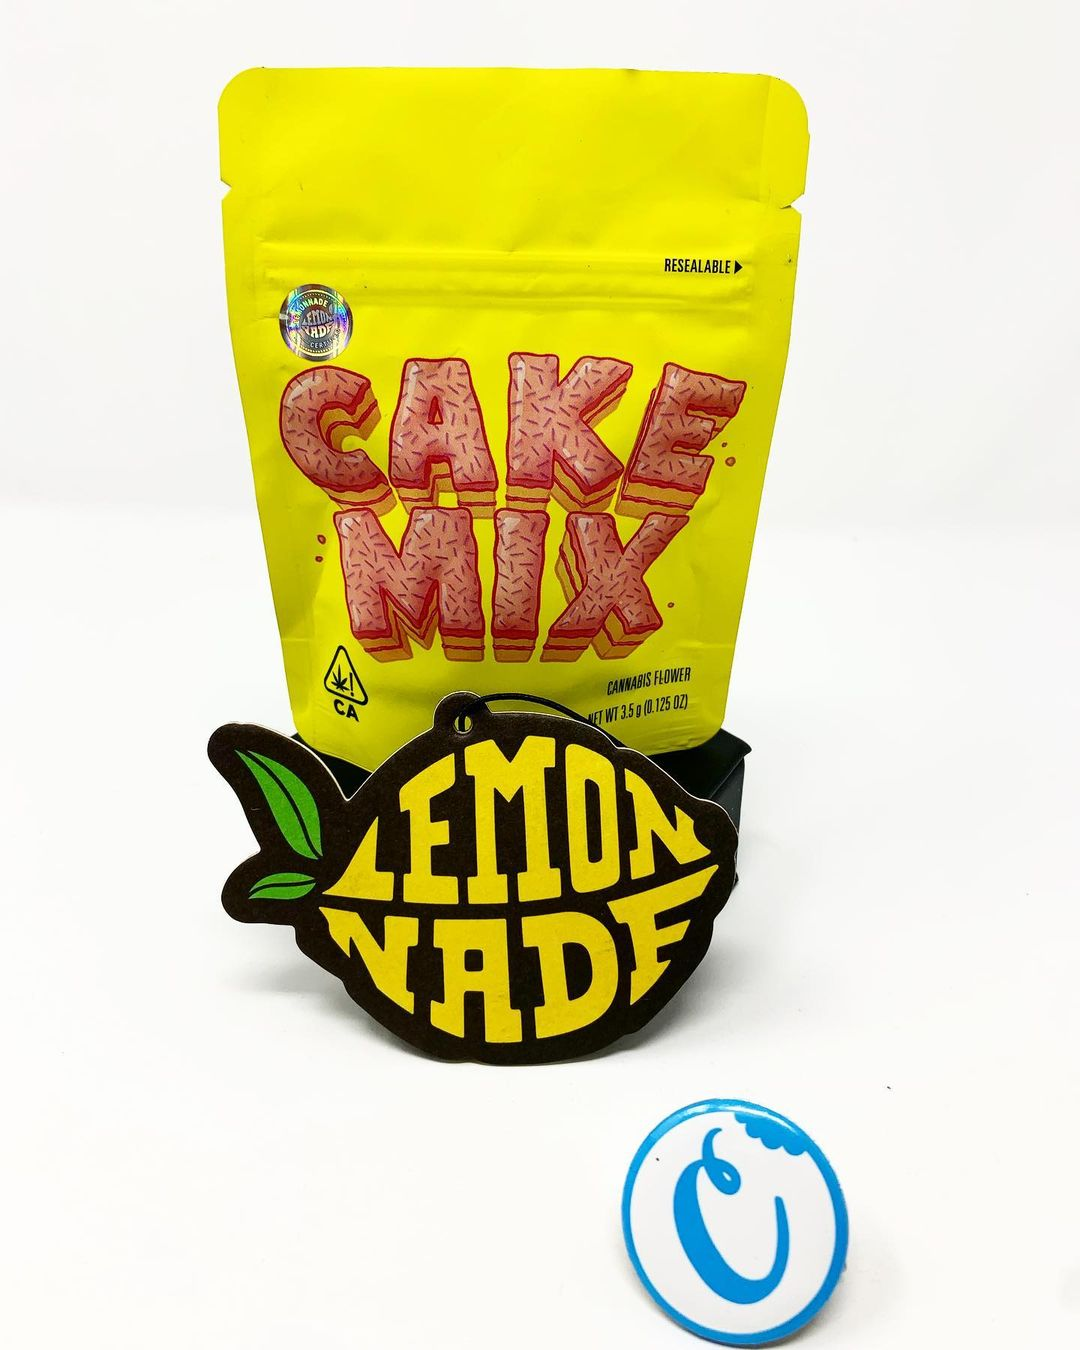 Buy Lemonade cake mix weed strain online